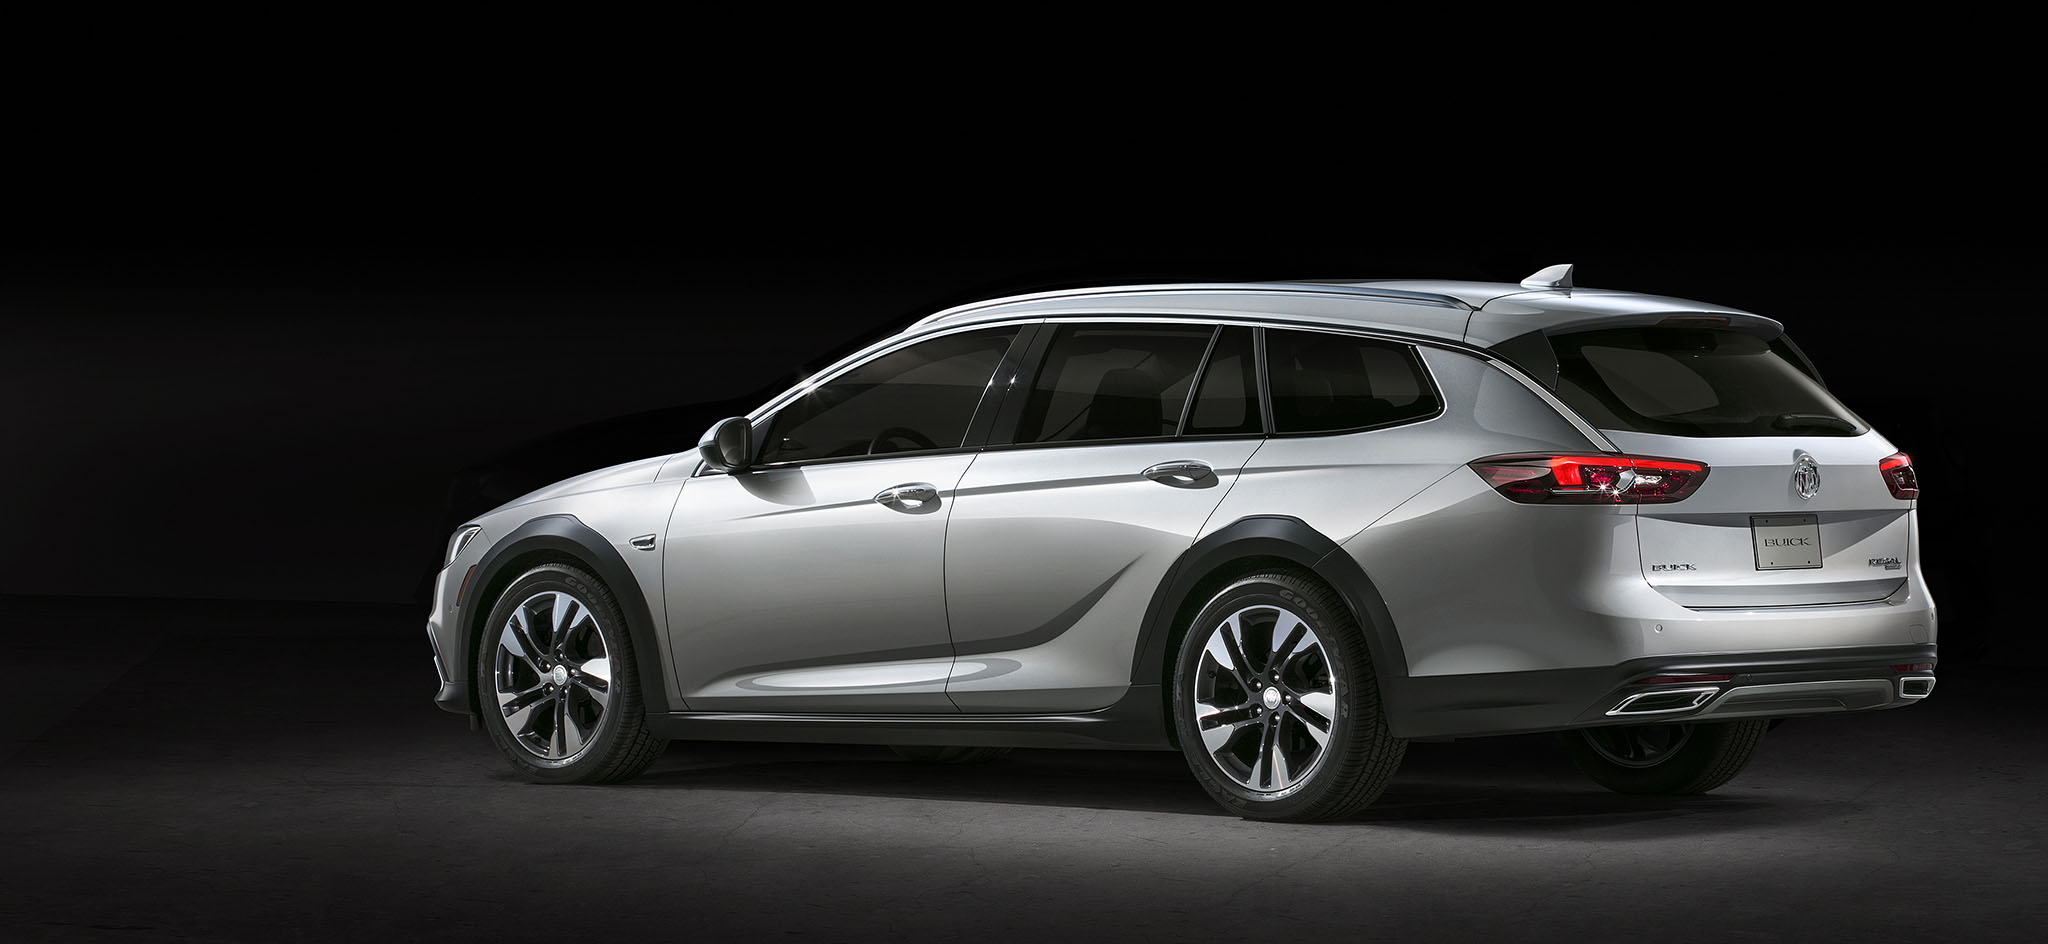 par car clutch with Report The 2018 Buick Regal Tourx Will Msrp For Under 30000 on Sujet3651 furthermore  in addition Ezgo Carburetor Diagram moreover Audi Rs Q3 Performance Audis Alphabet Soup Creates A 367 Hp Mini Monster also Geneva 2014 420 Ps Audi Tt Quattro Sport Concept.